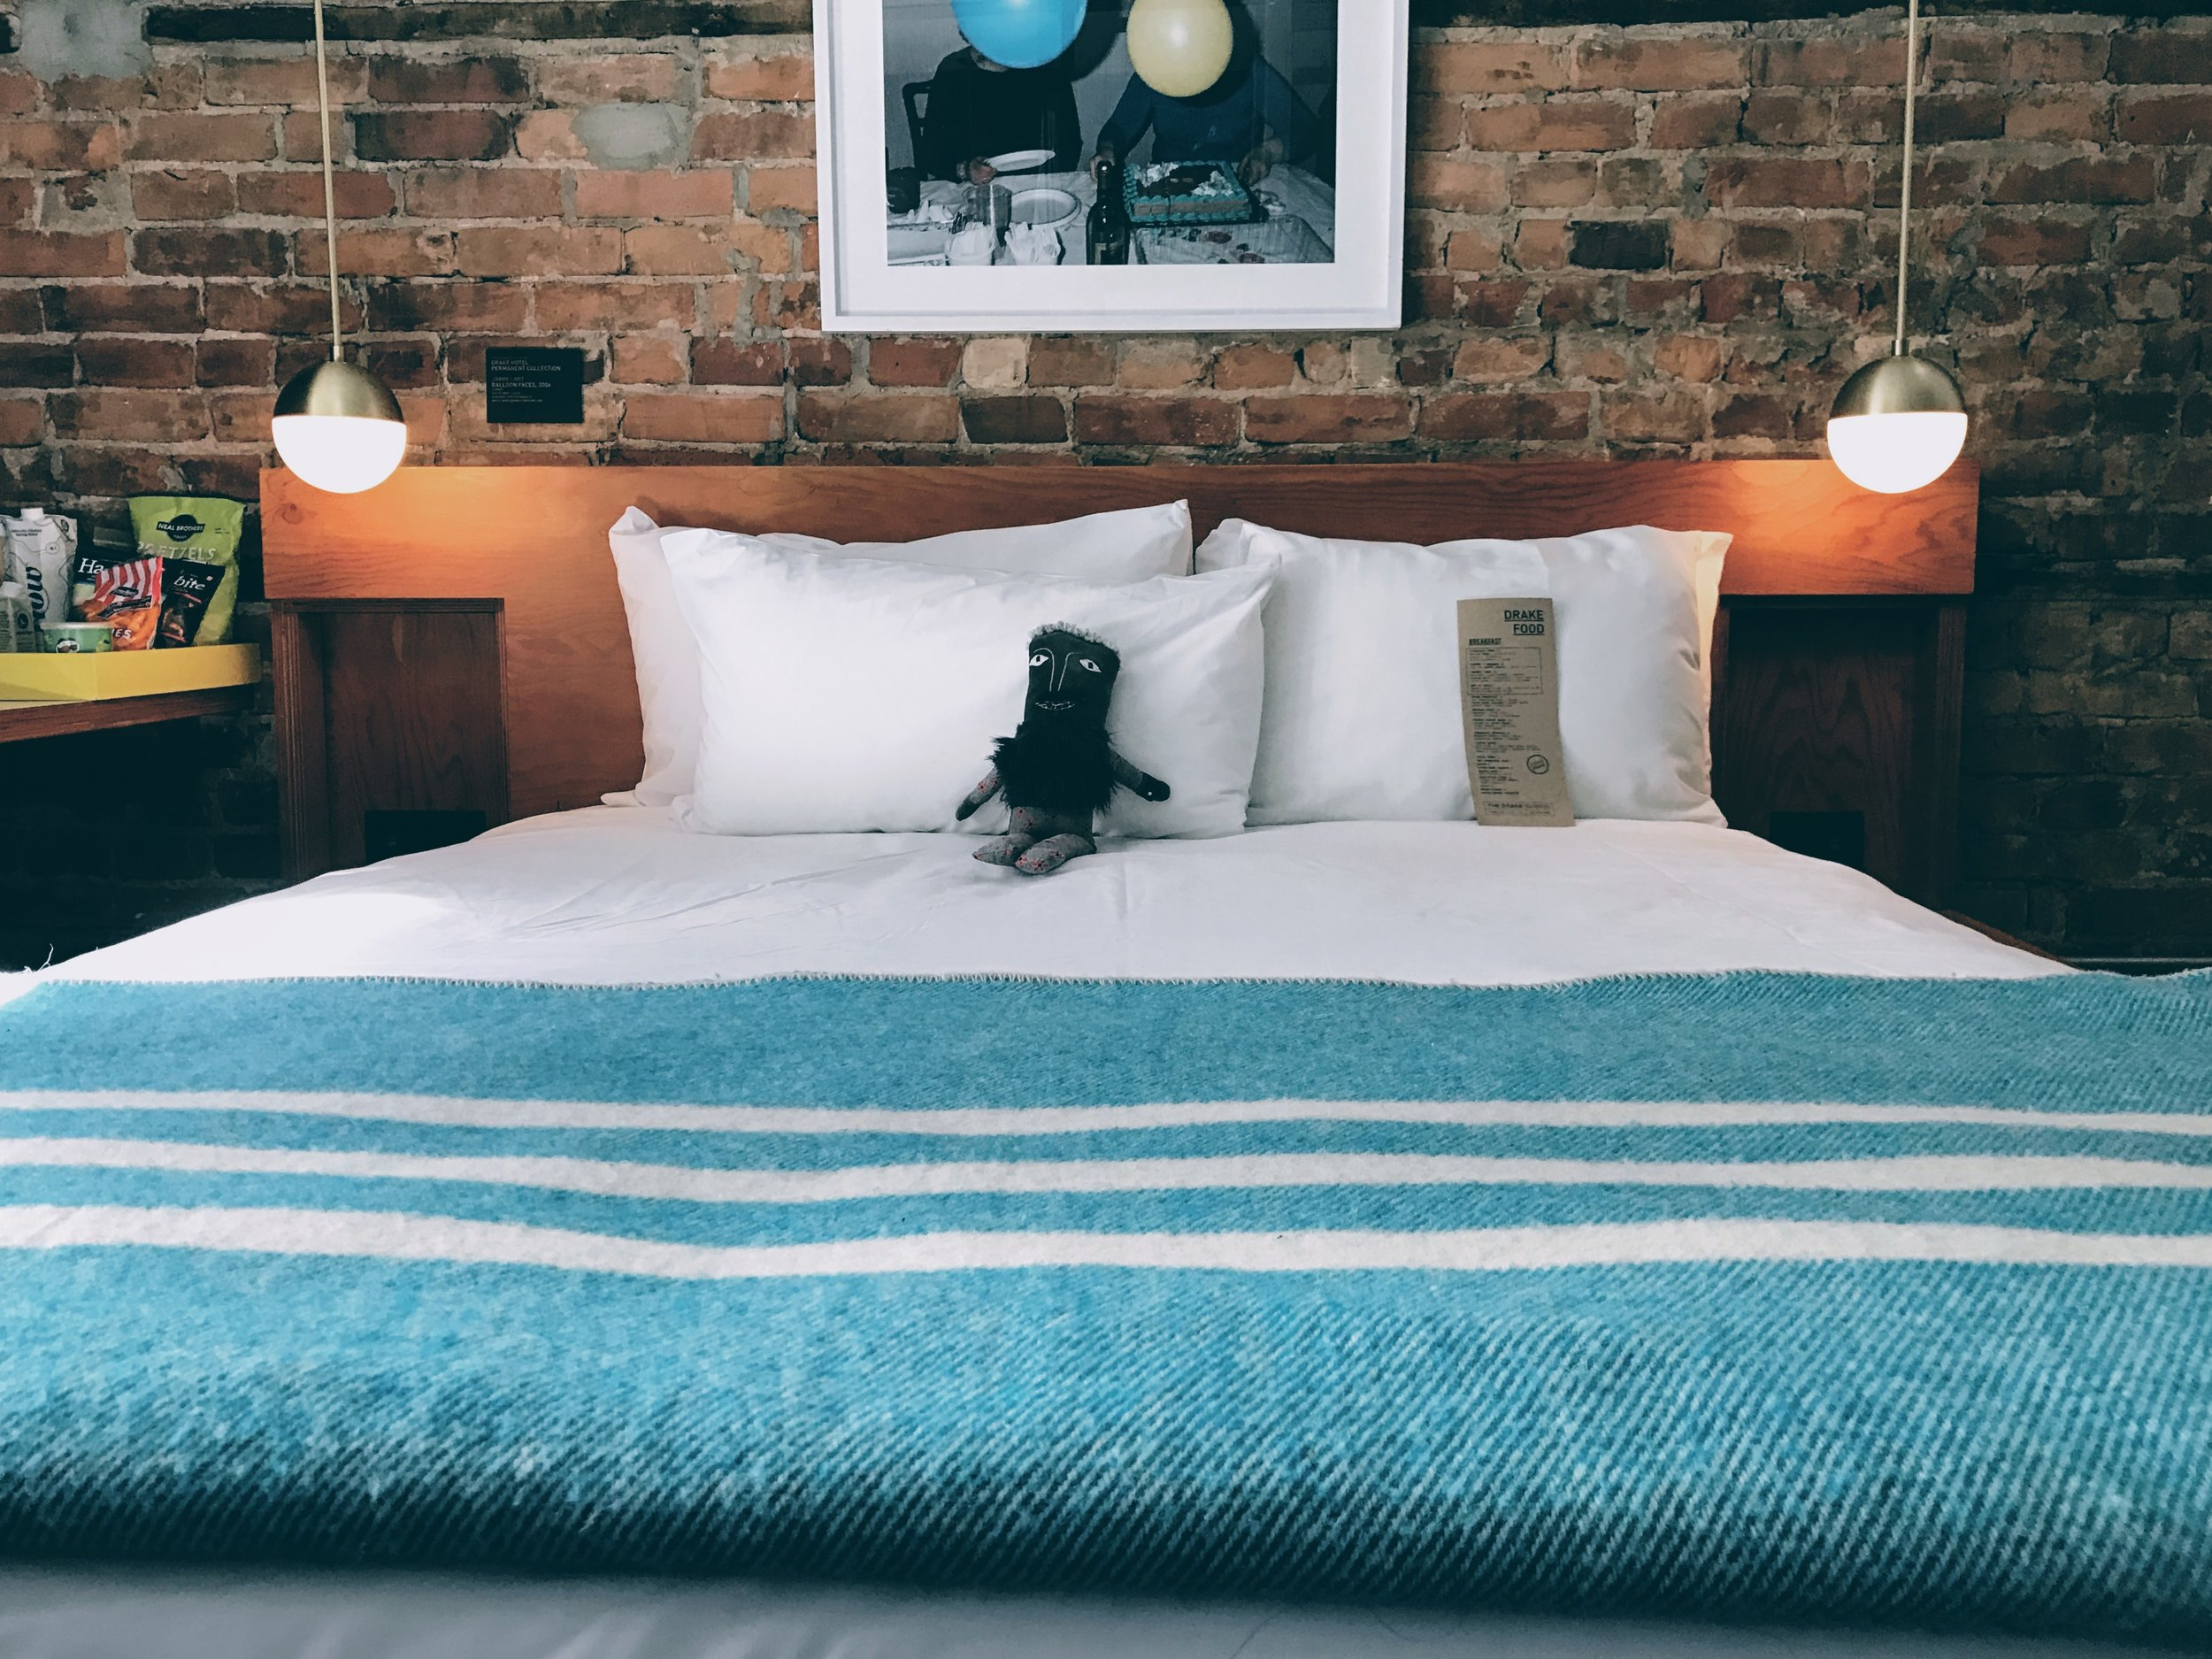 The Drake Hotel offering cozy rooms with a twist